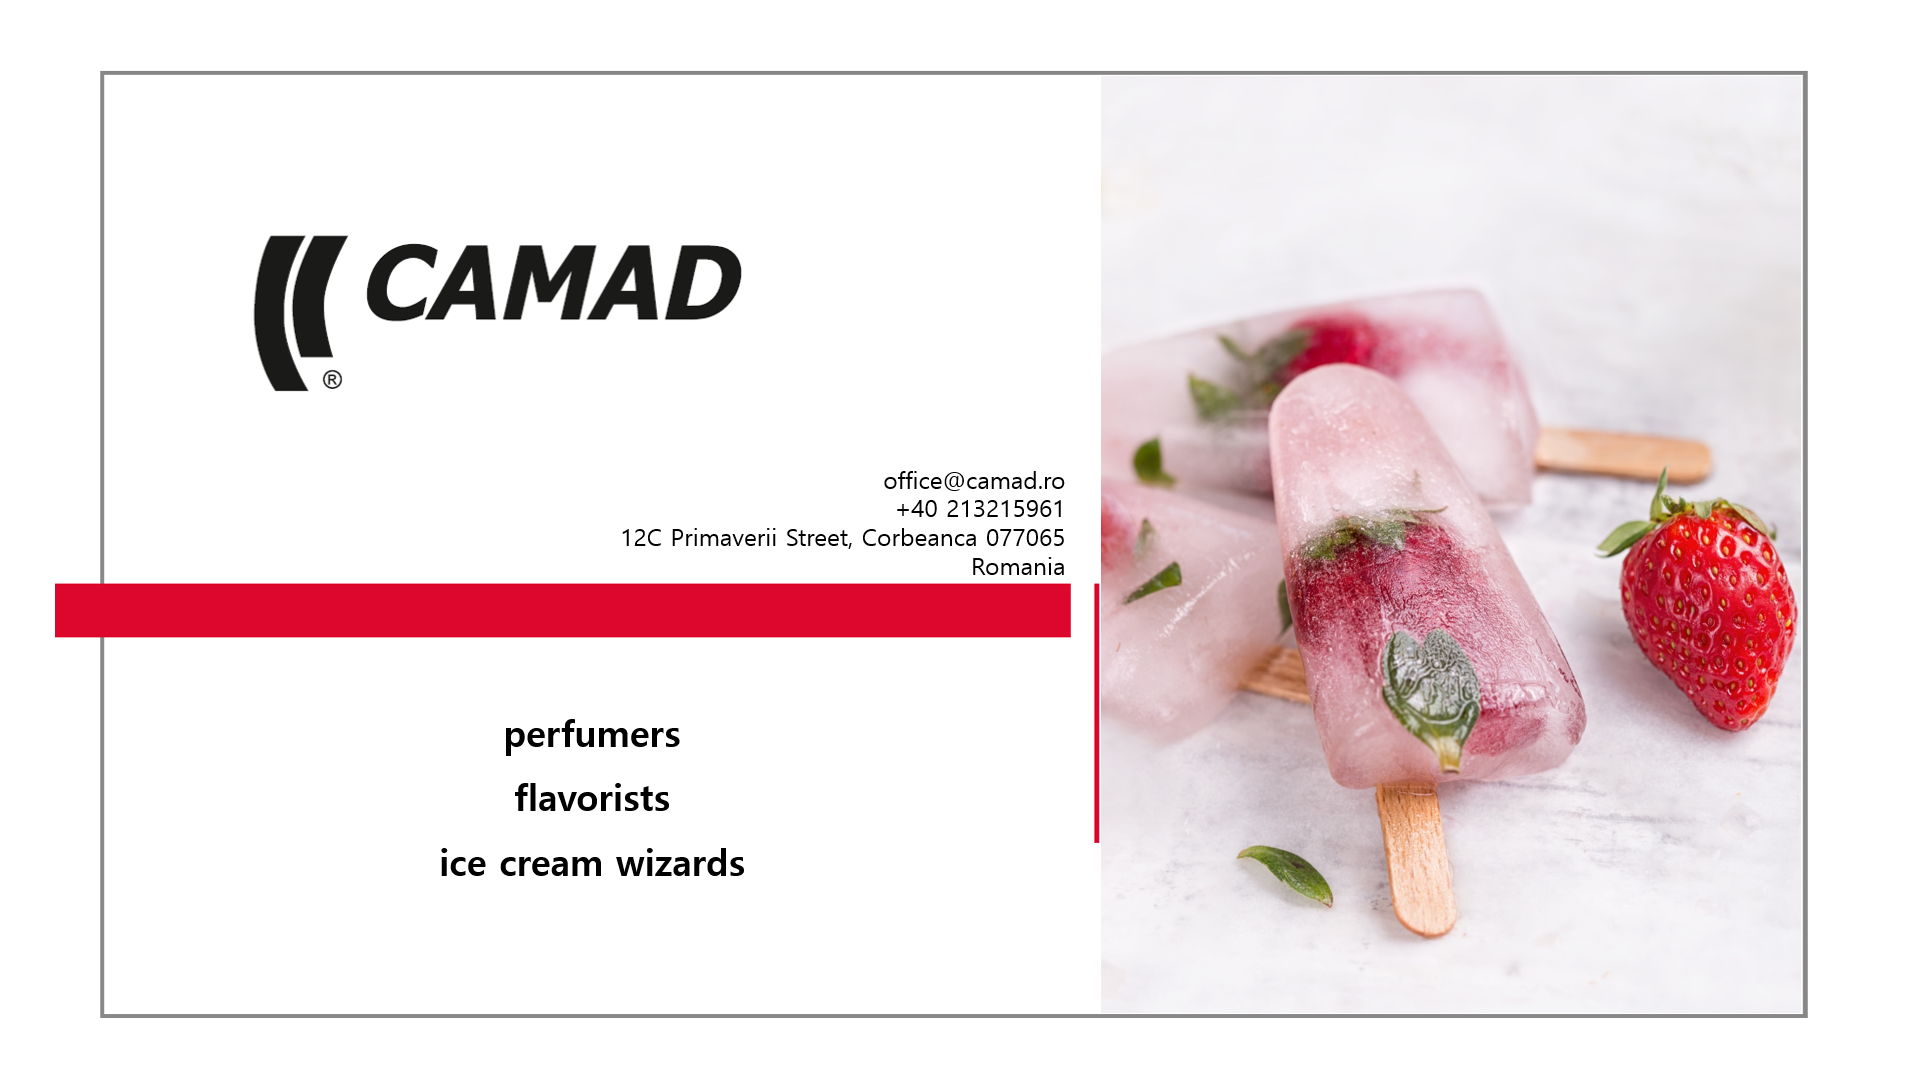 Camad Flavors - +40 21 321 59 61